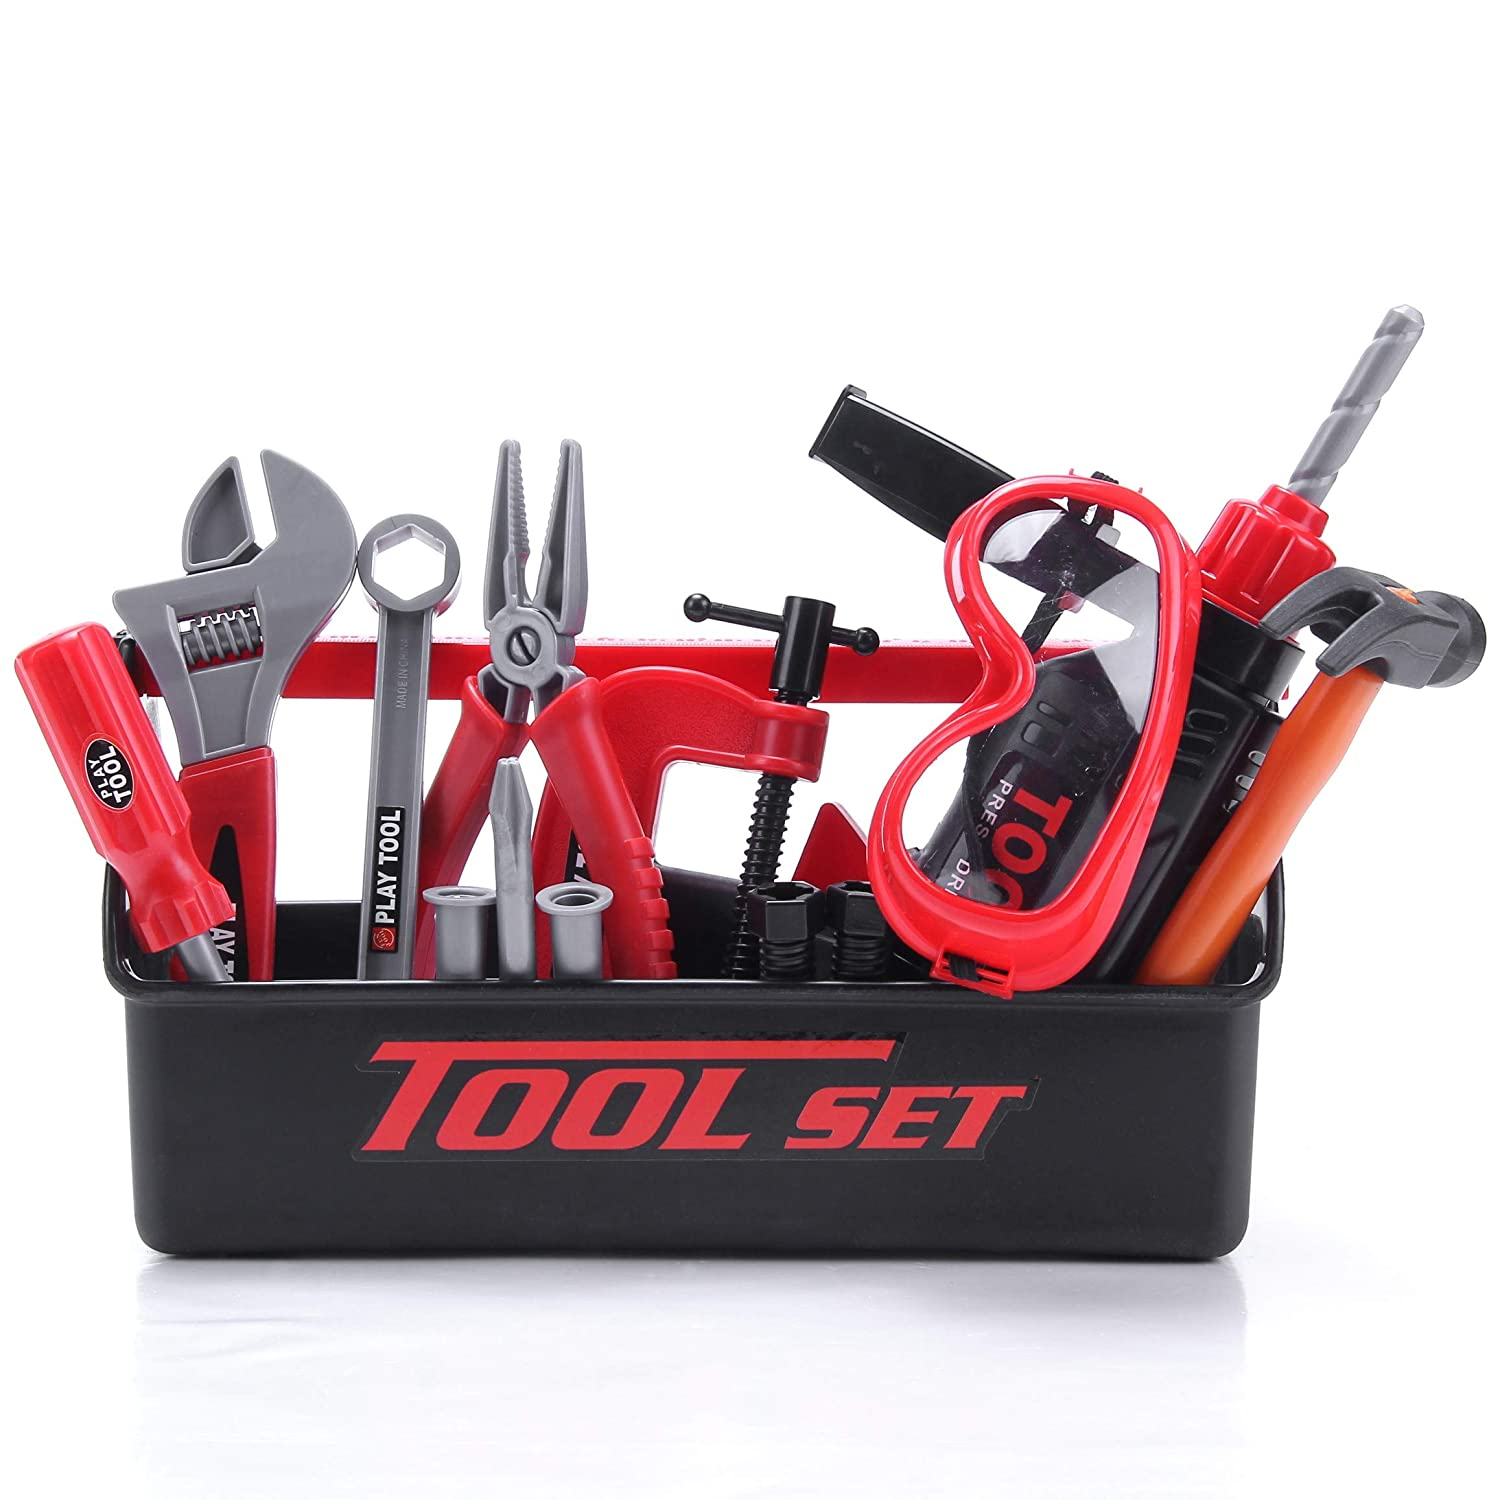 STEAM Life Kids Tool Set for Toddlers Age 3:7 Year Old Boy Toys - 23 pc Tool Box Set Toy Tools for Kids